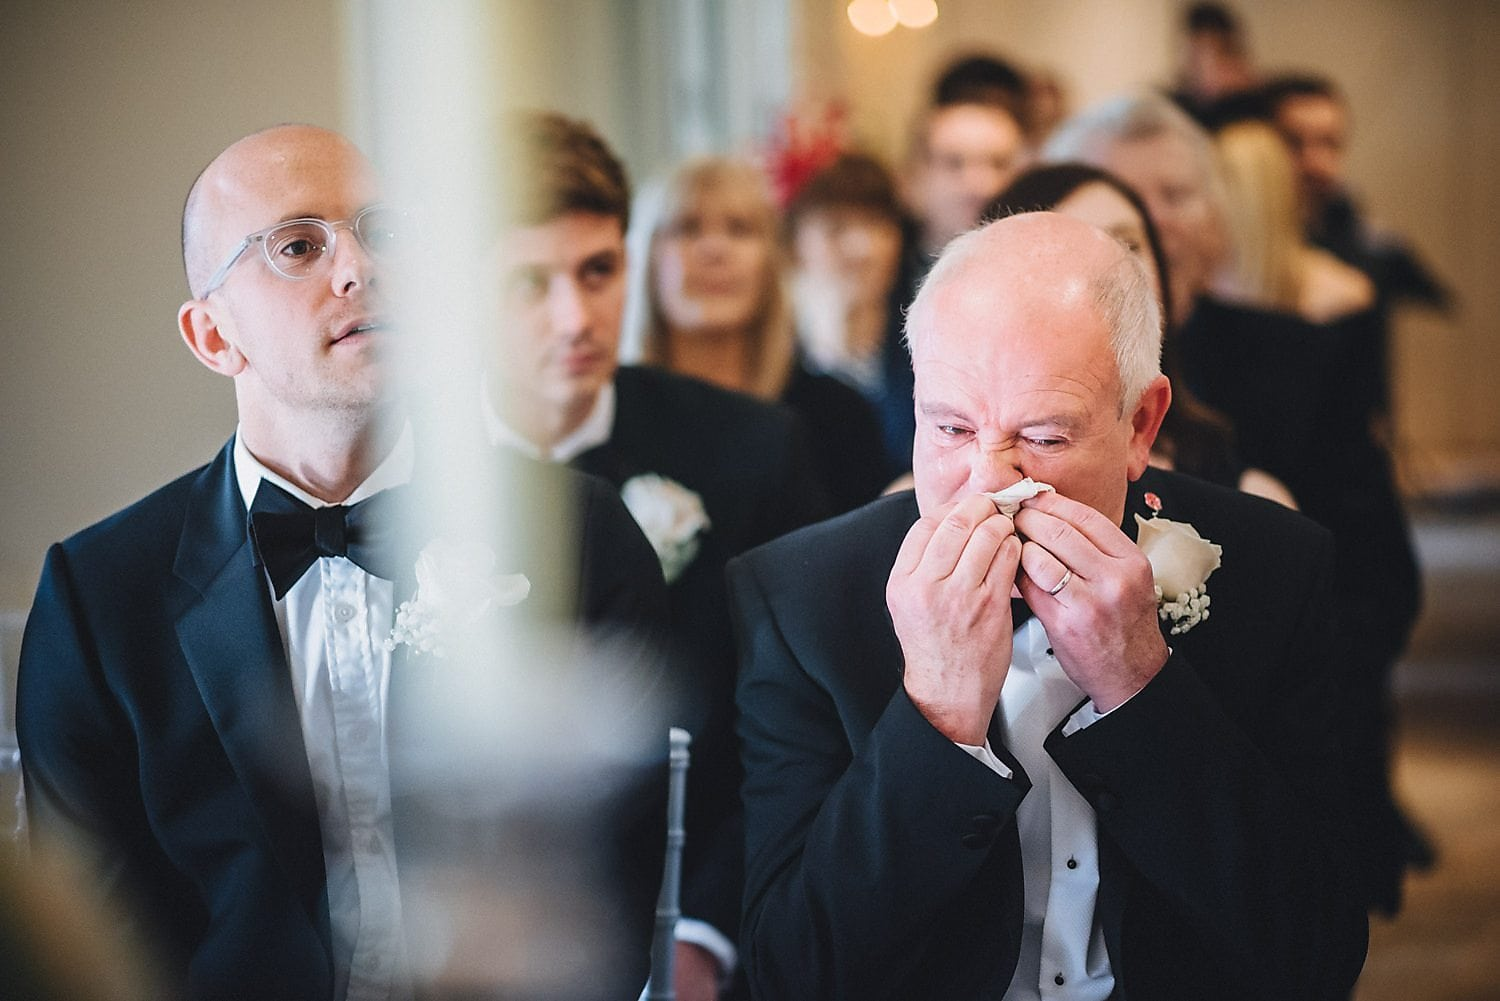 Guests get emotional during wedding ceremony